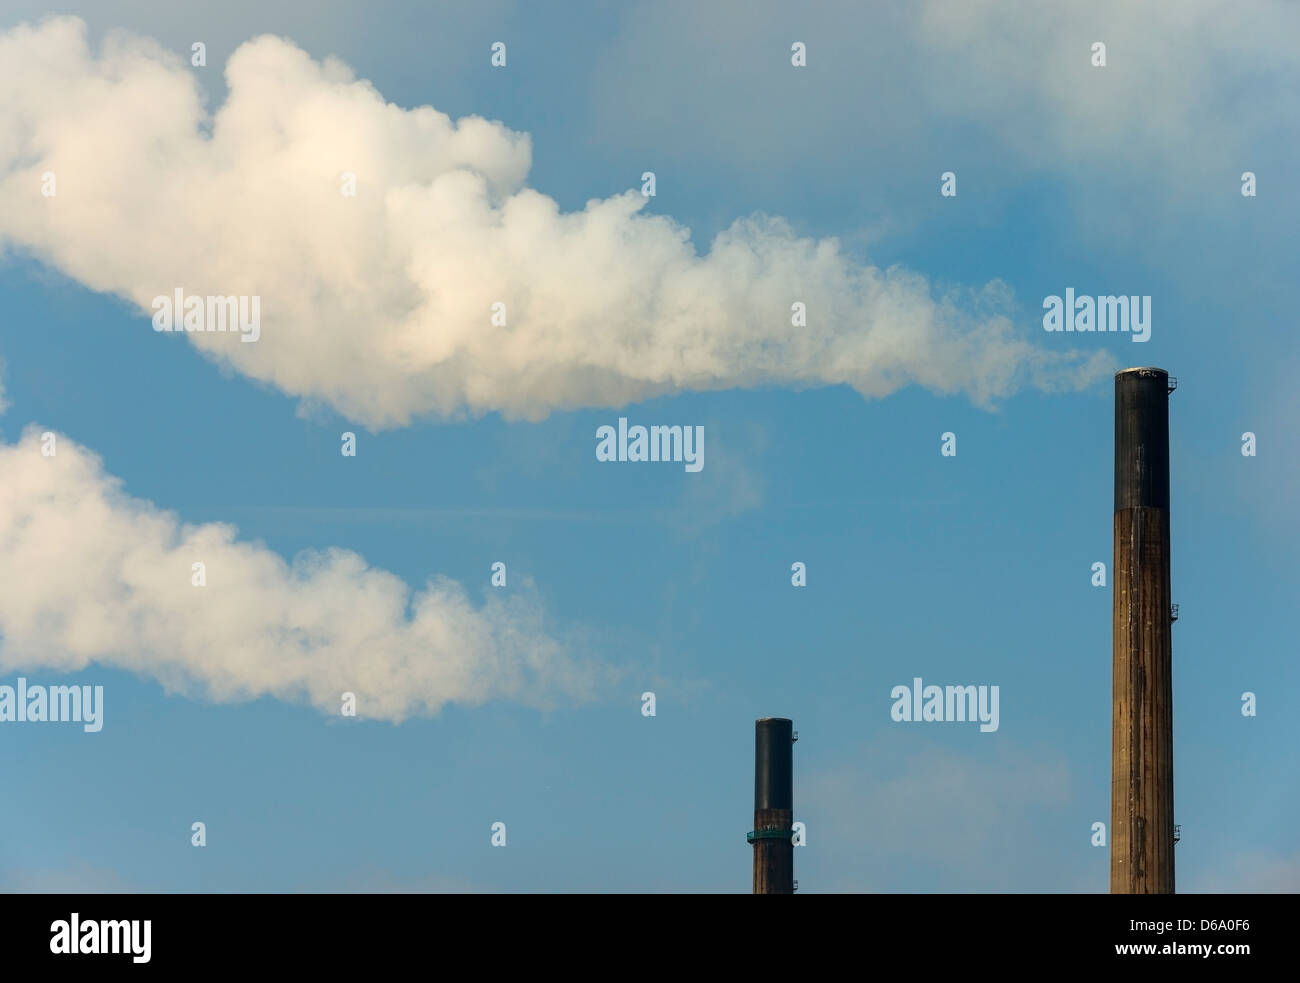 Smoke billowing from industrial chimneys - Stock Image